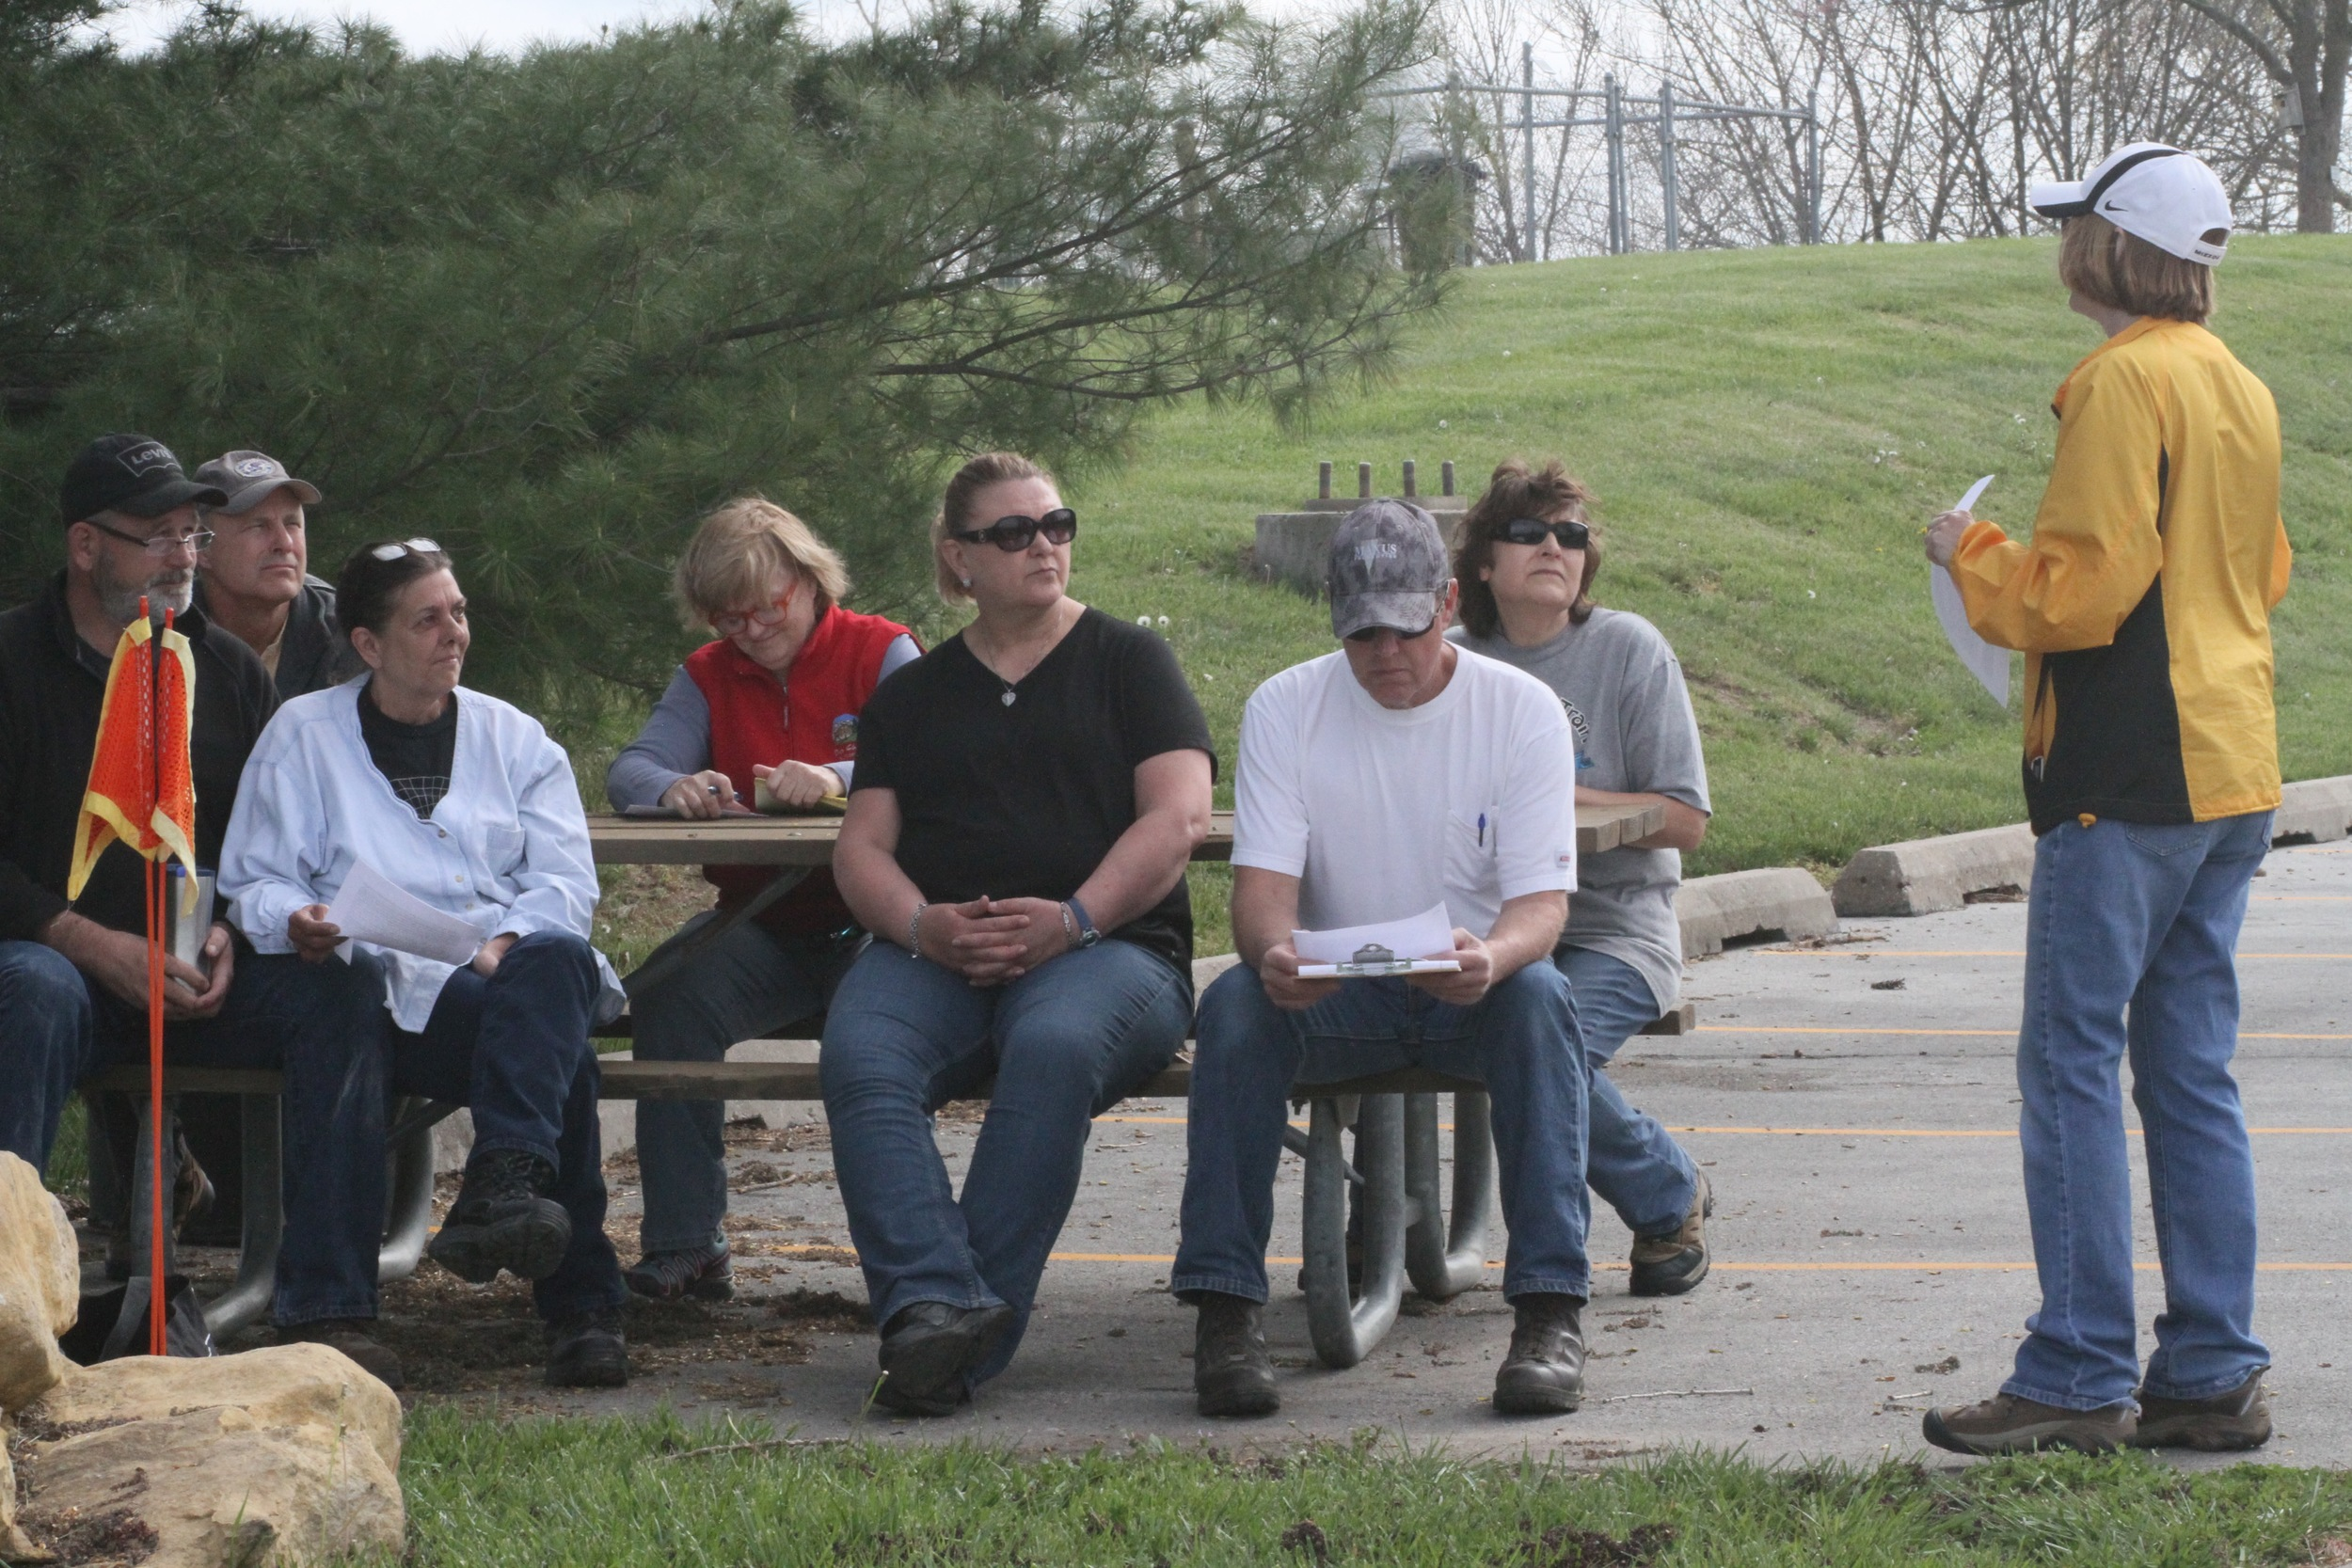 Sally goes over her notes as she explains the finer points of tracklaying to seminar participants.